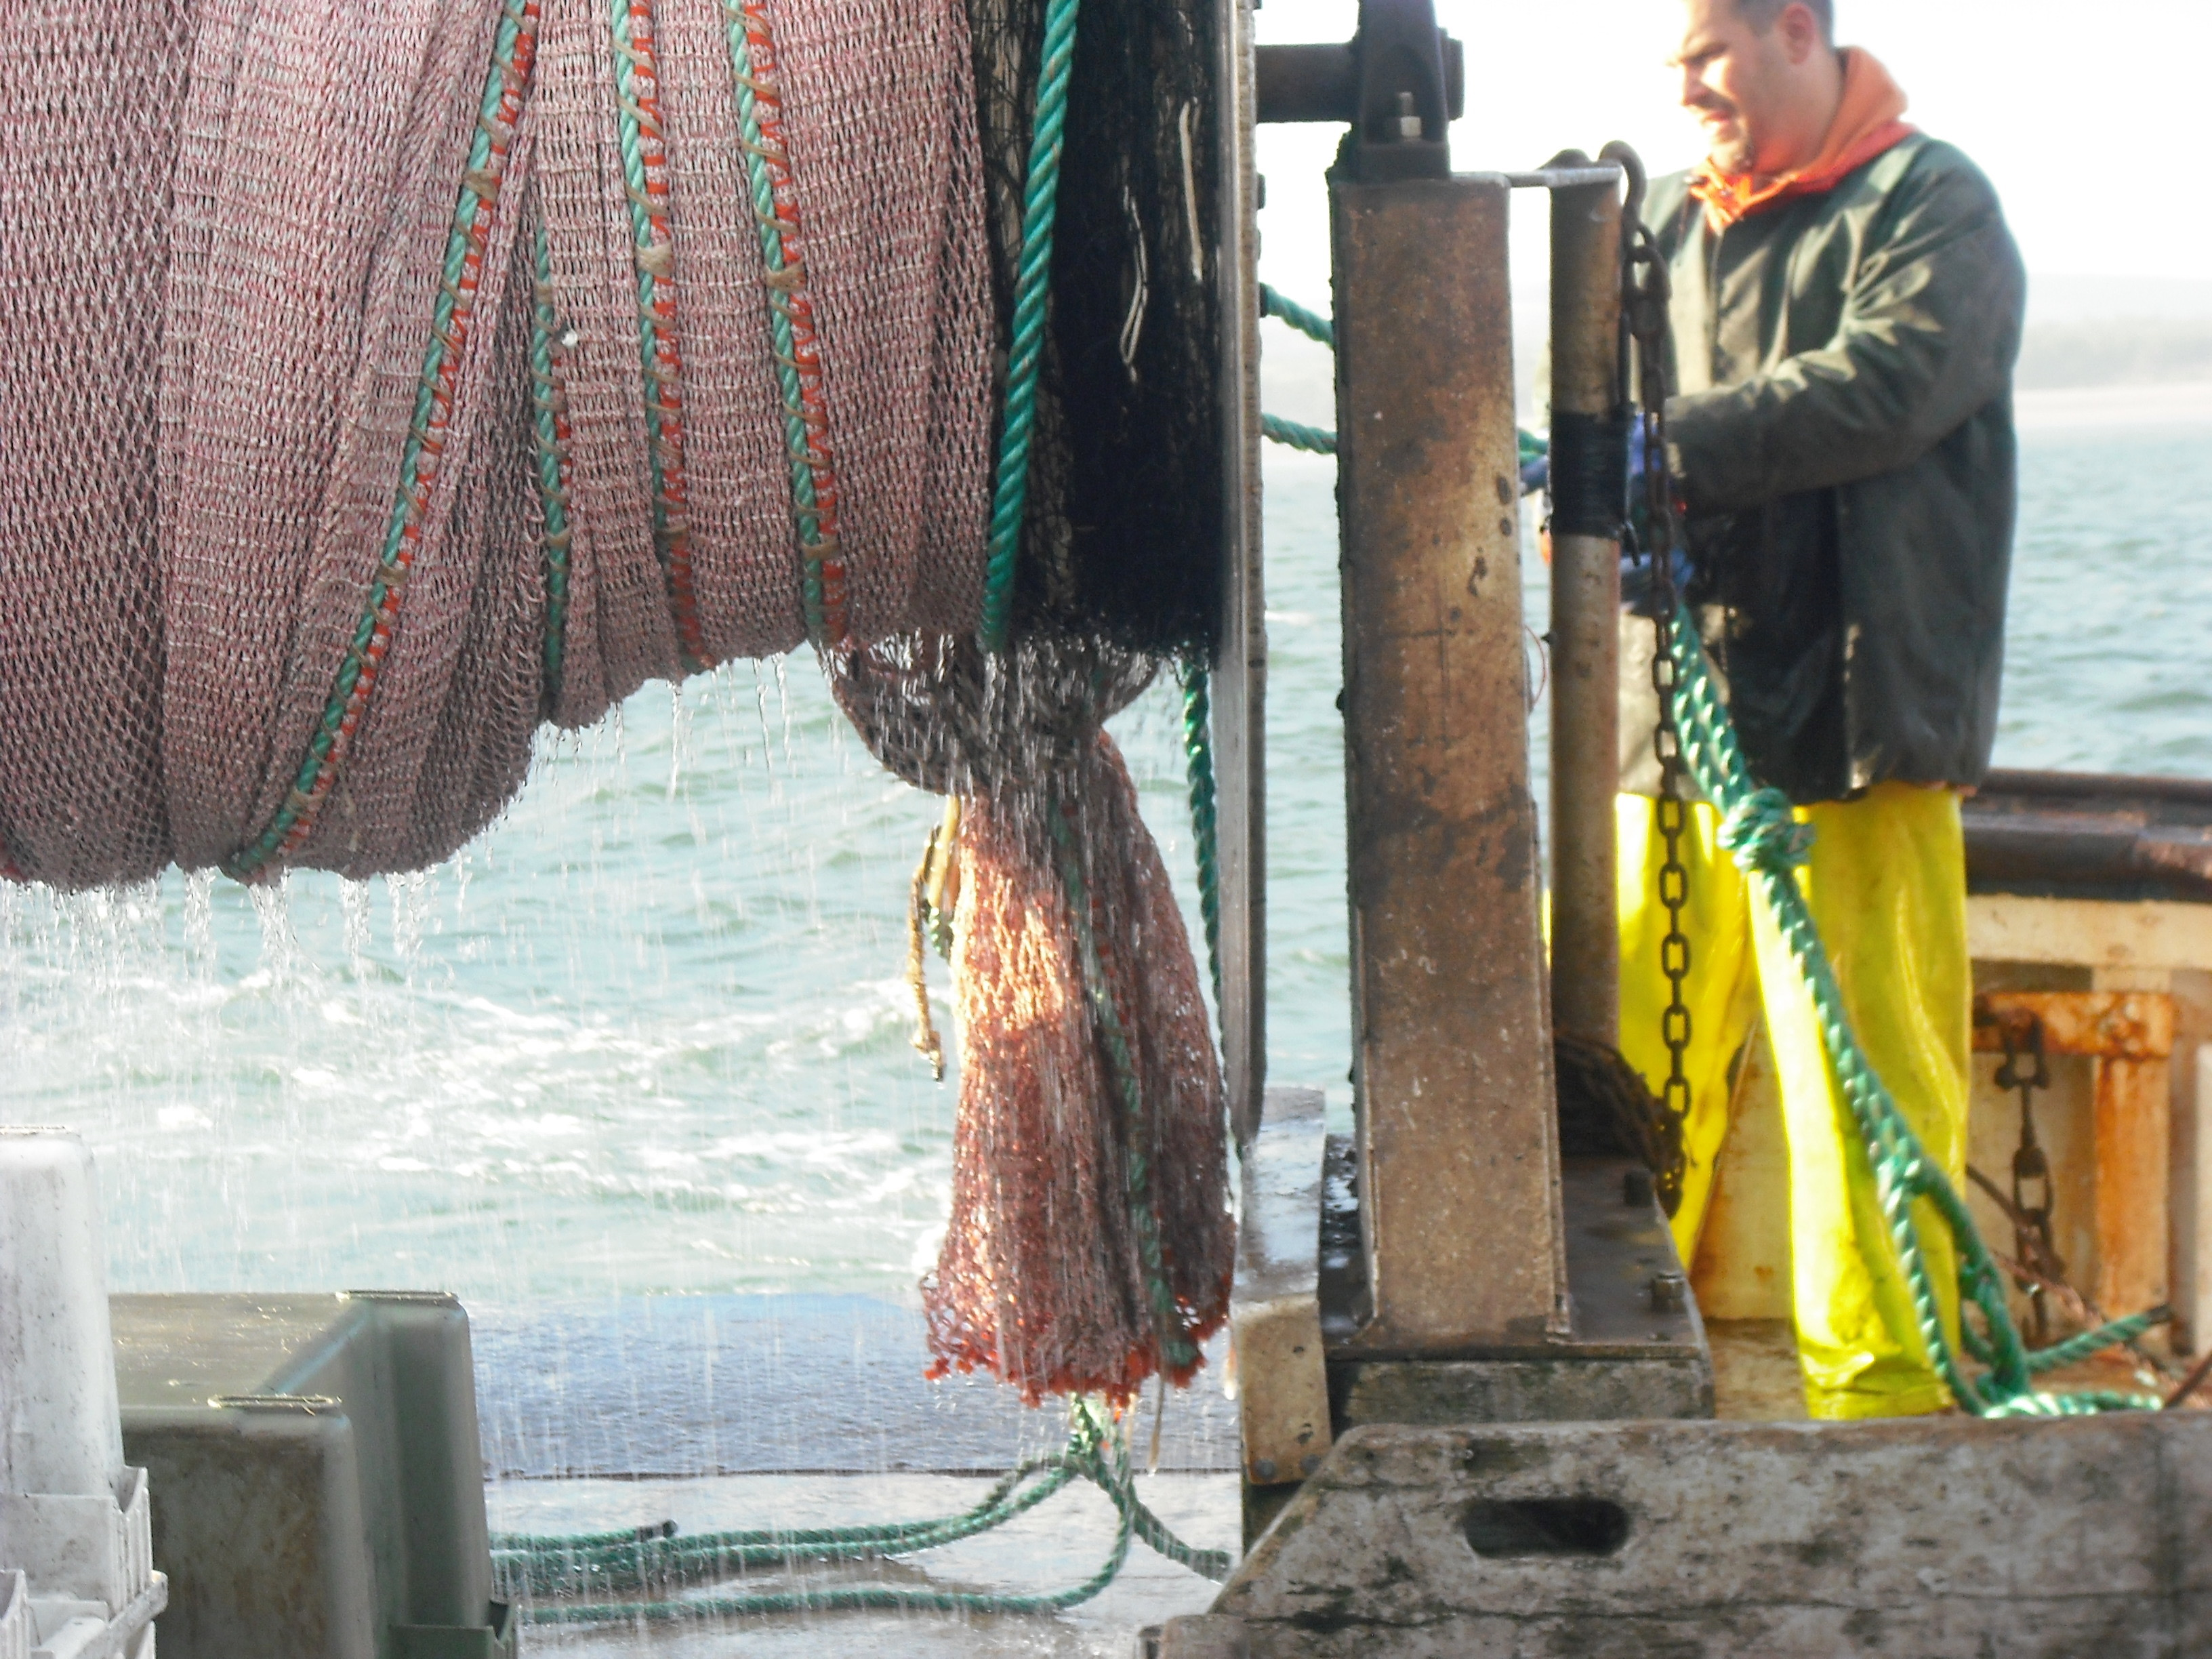 Stern of boat with trawl net on reel and fisherman